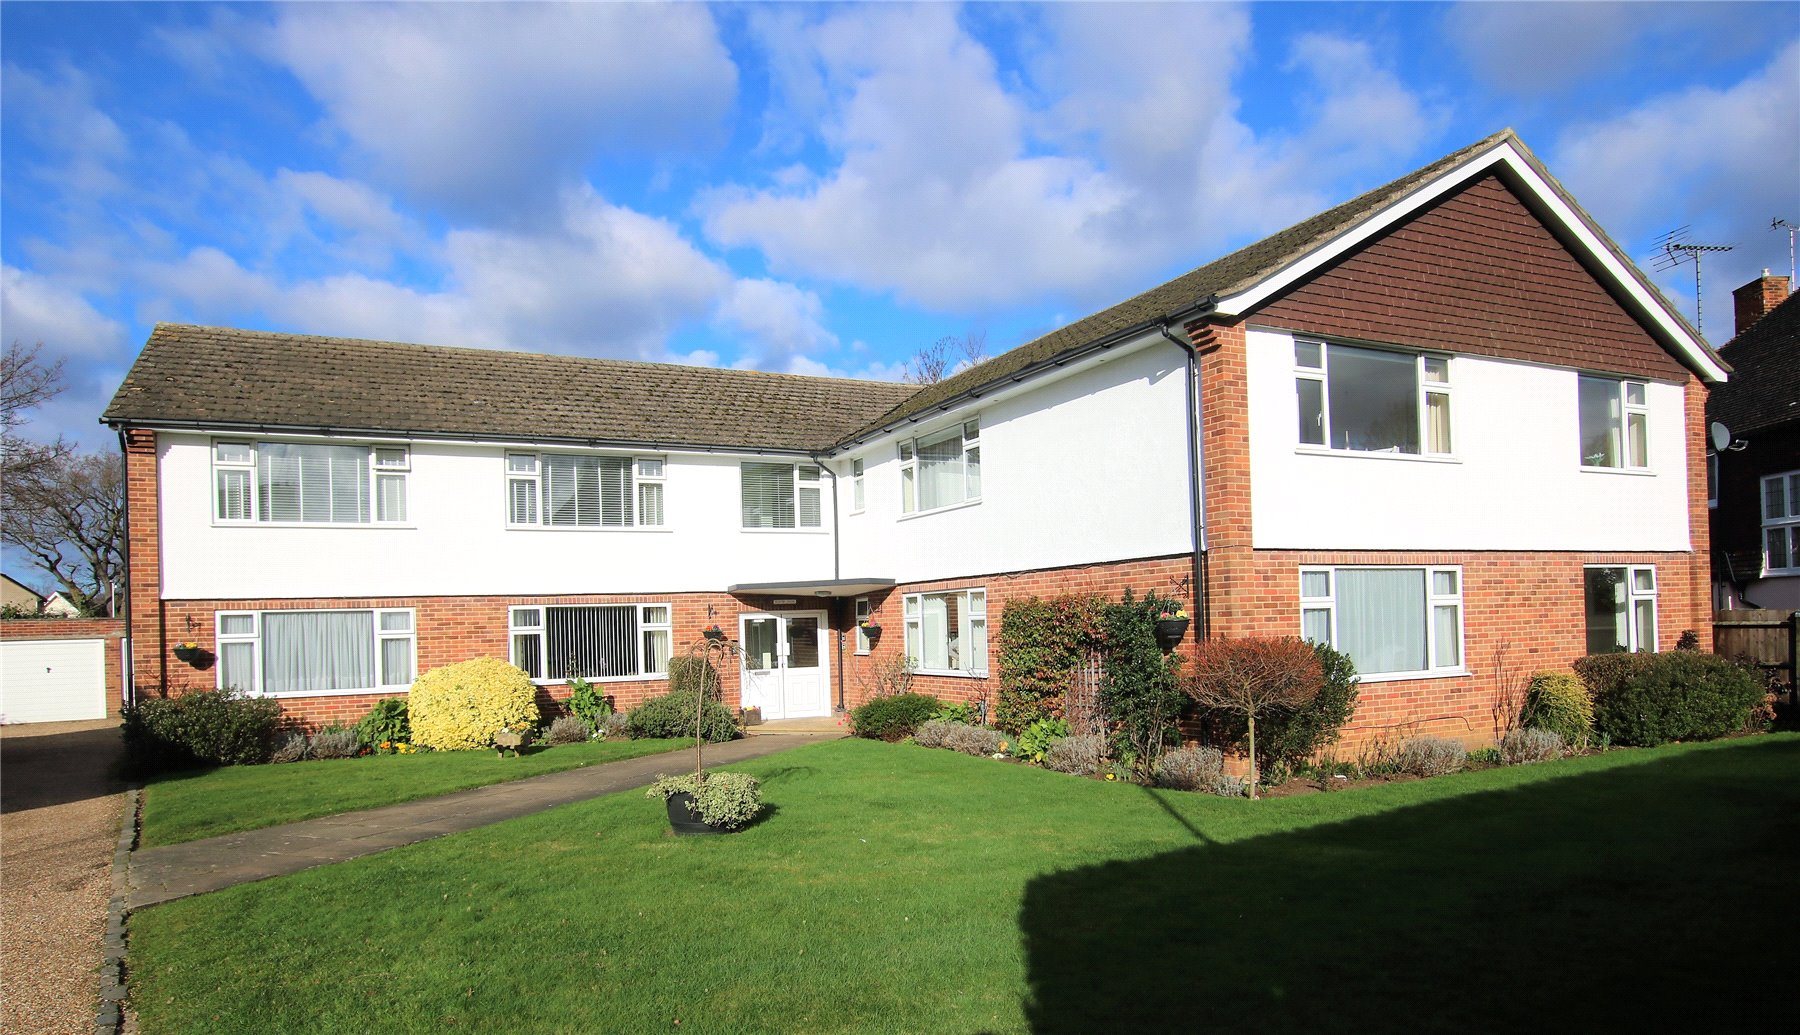 2 Bedrooms Apartment Flat for sale in Madeira House, Madeira Road, West Byfleet, Surrey, KT14